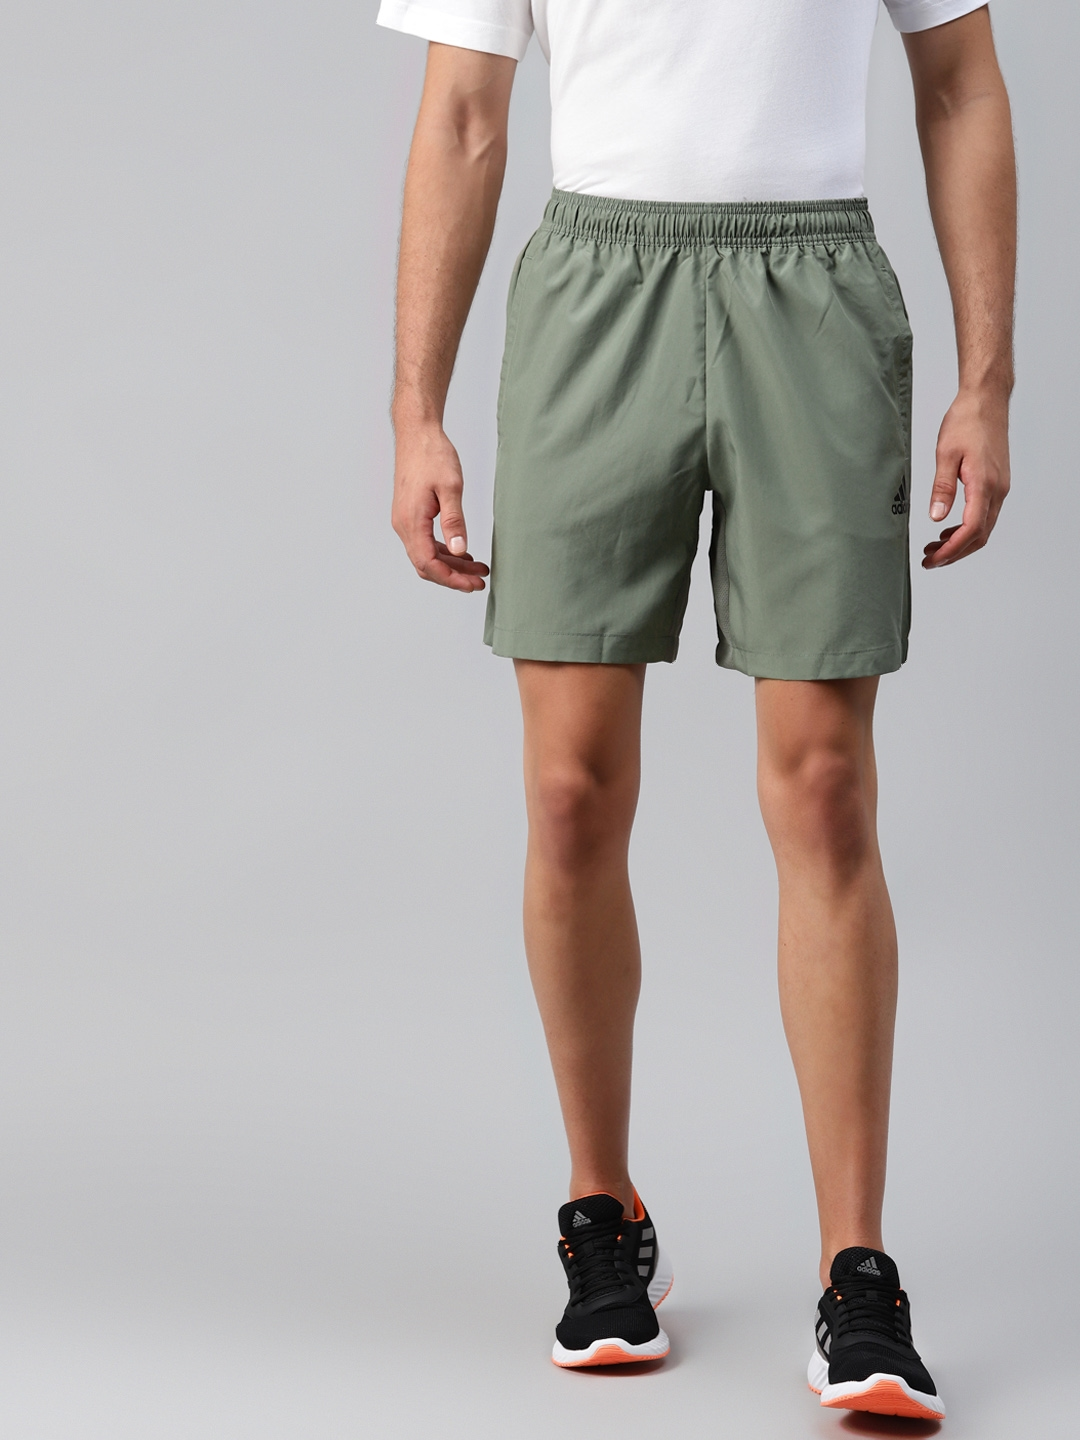 ADIDAS Men Olive Green Woven Solid Mid Rise Sports Shorts